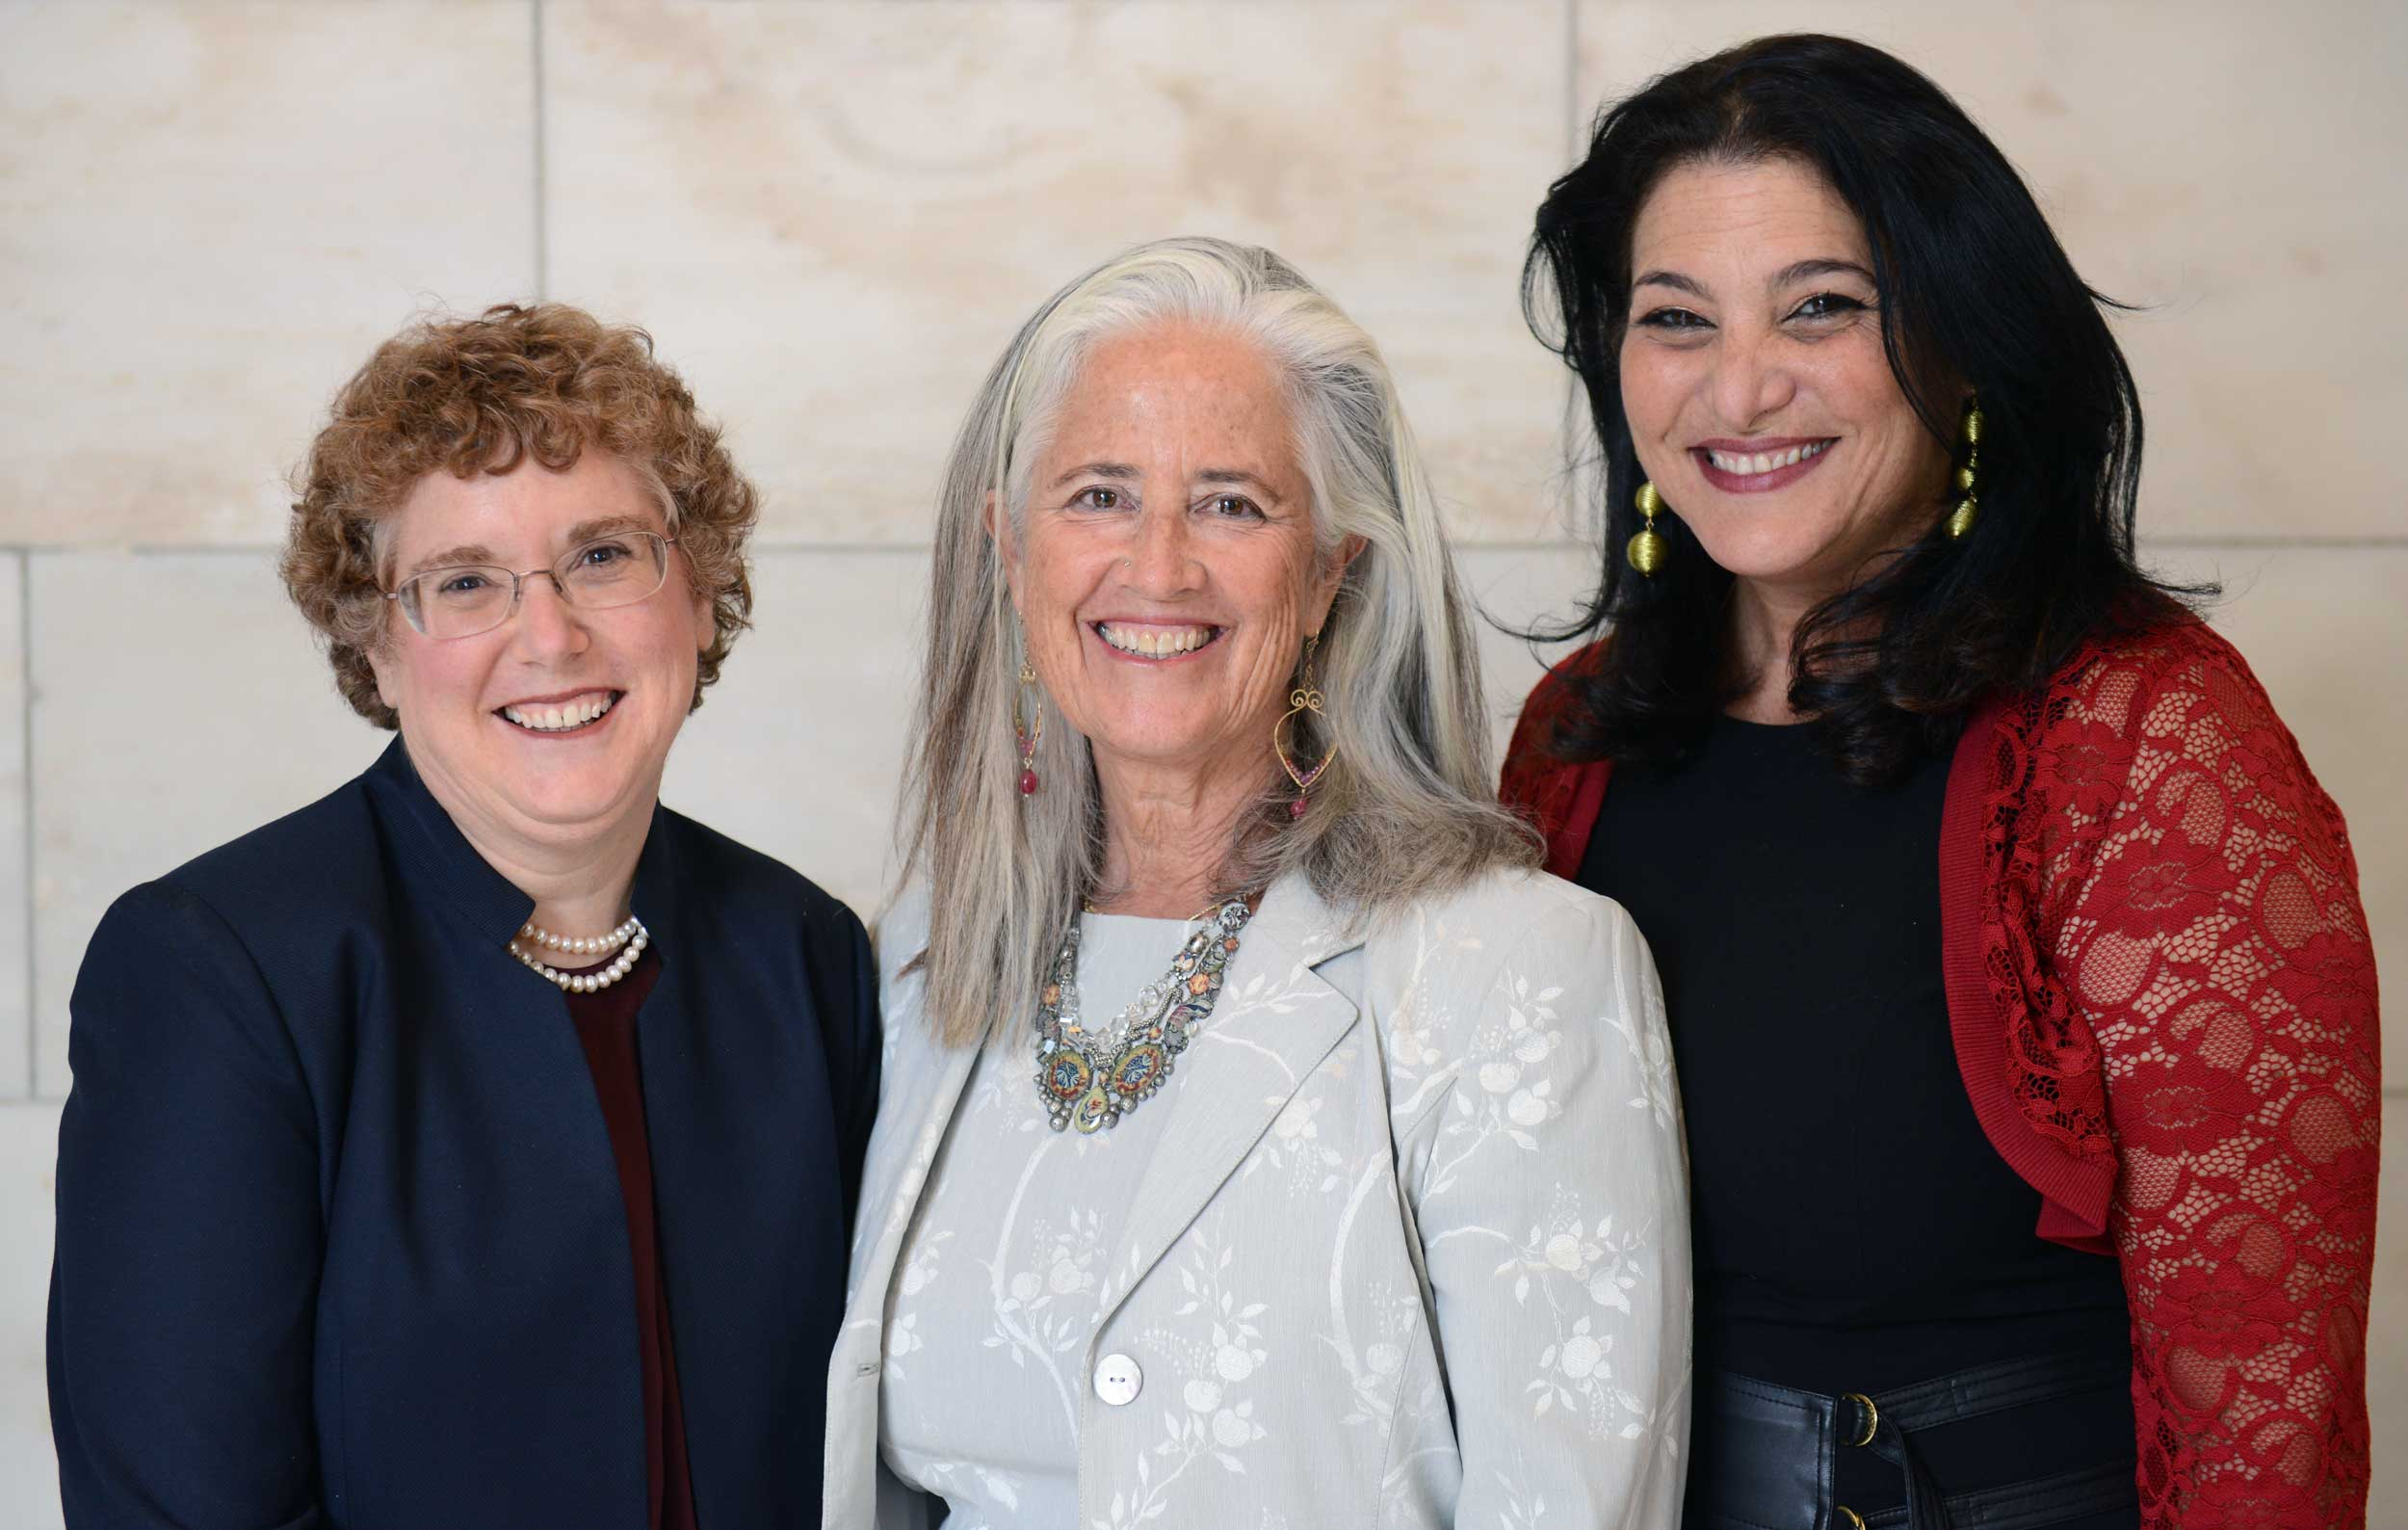 Naomi Ackerman, Deborah Newbrun and Dr. Susie Tanchel Receive the 2018 Covenant Award at Annual Ceremony in New York